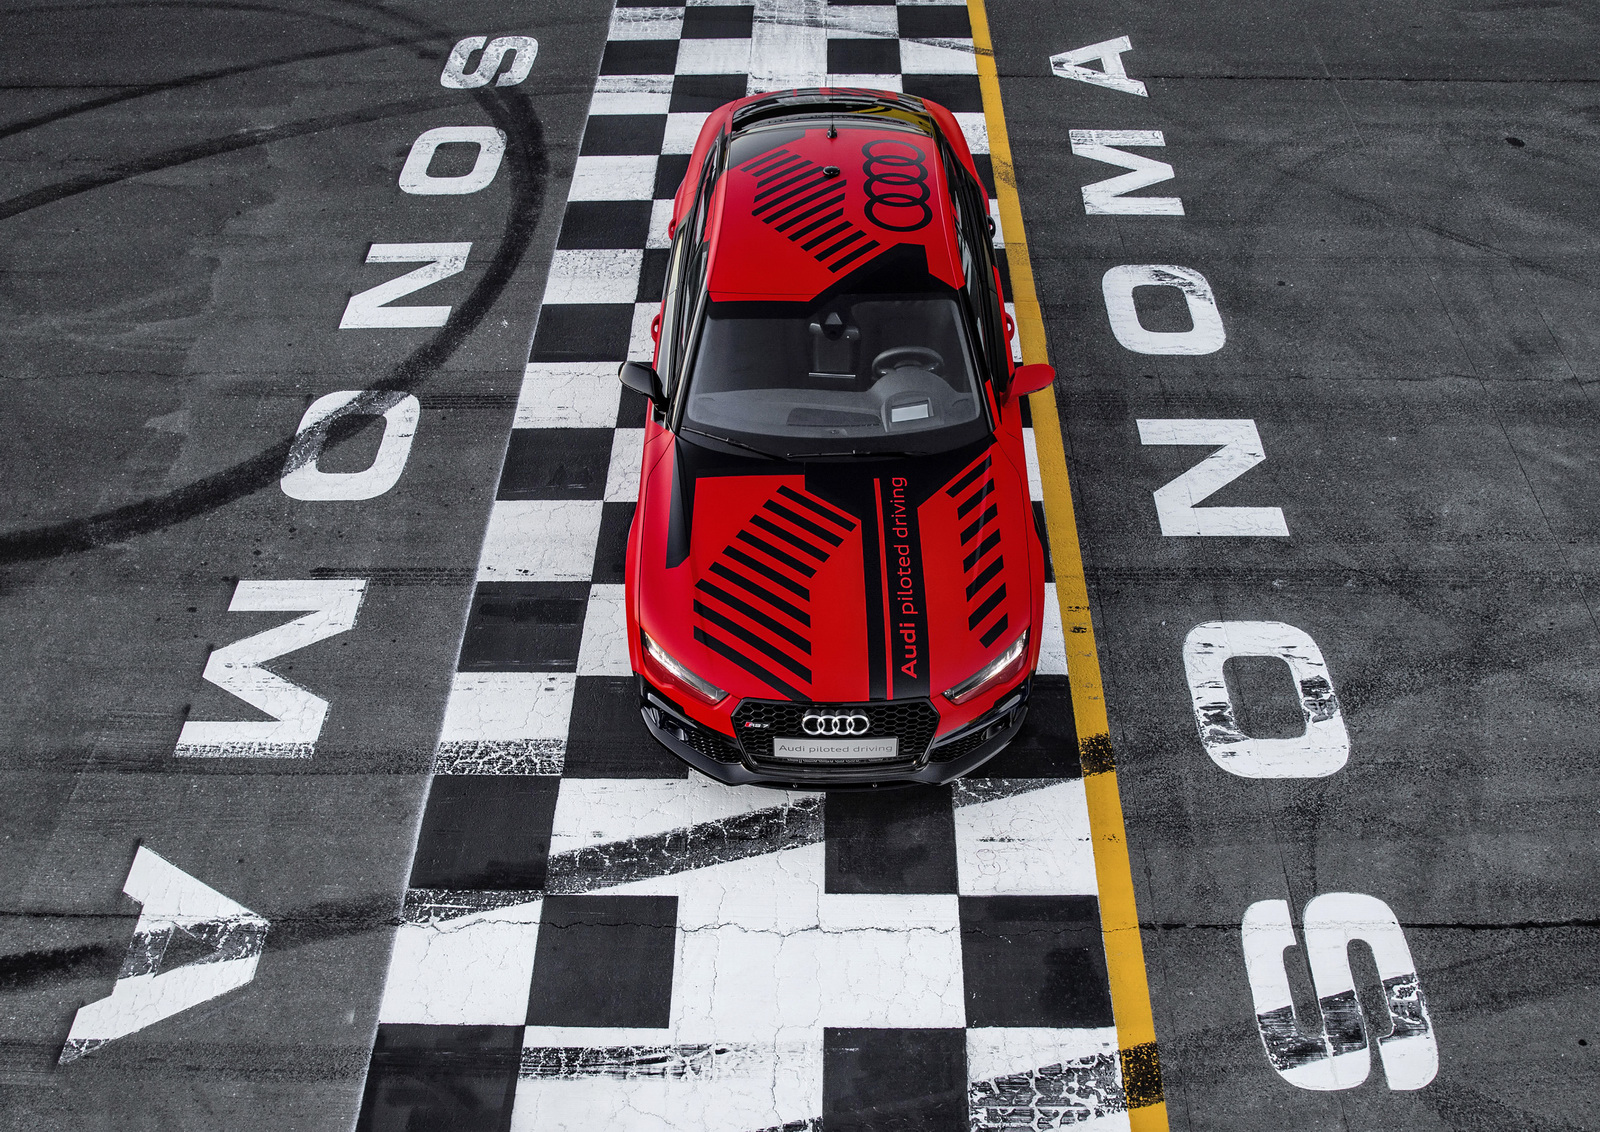 Des nouvelles de la RS7 Piloted Driving - Photo n°7